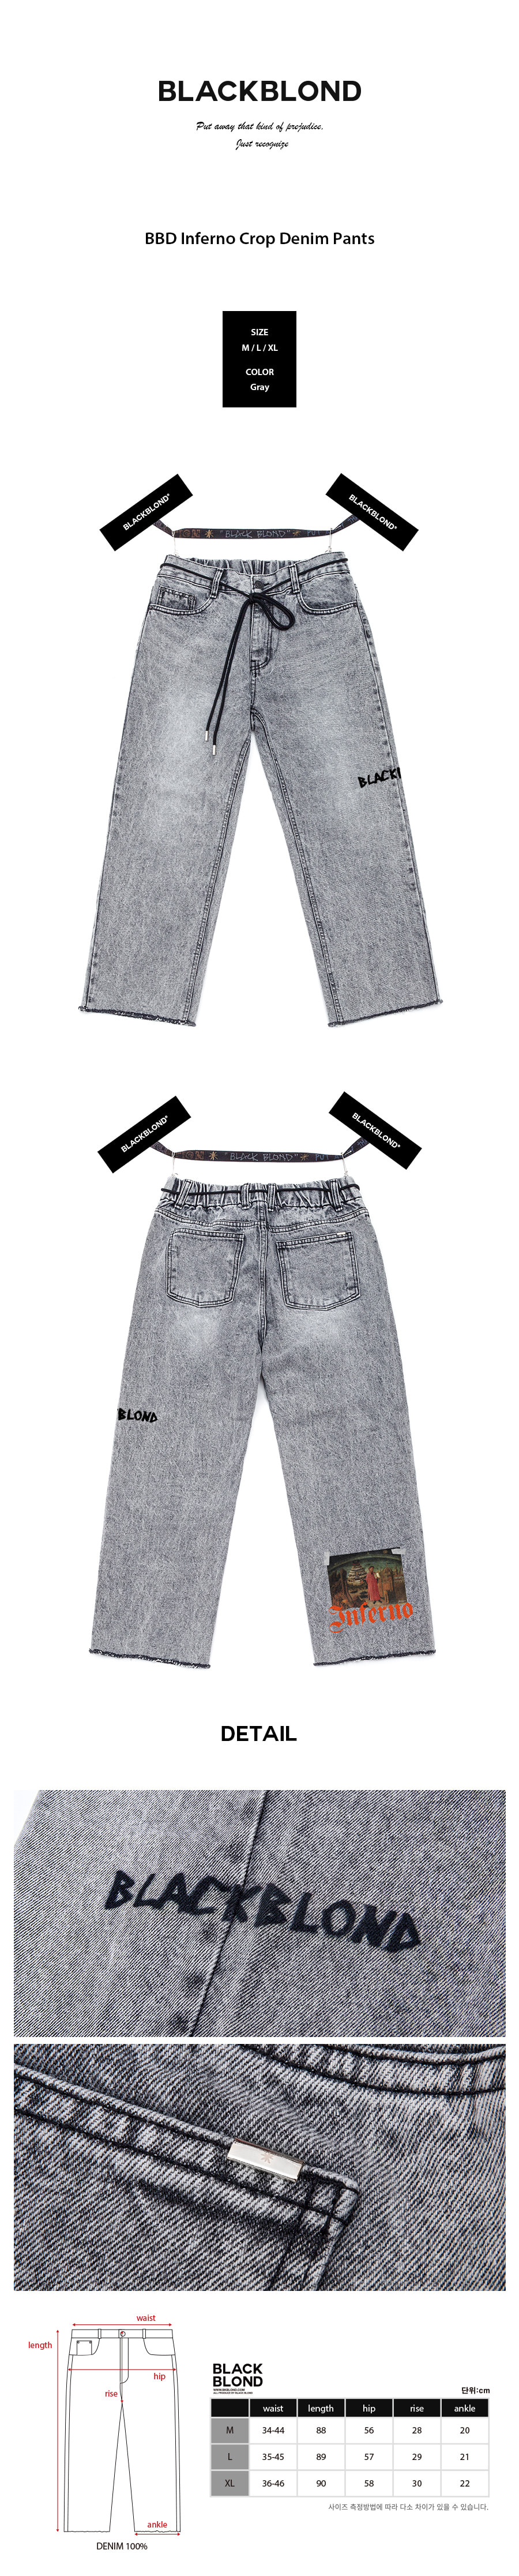 BBD-Inferno-Crop-Denim-Pants-%28Gray%29.jpg